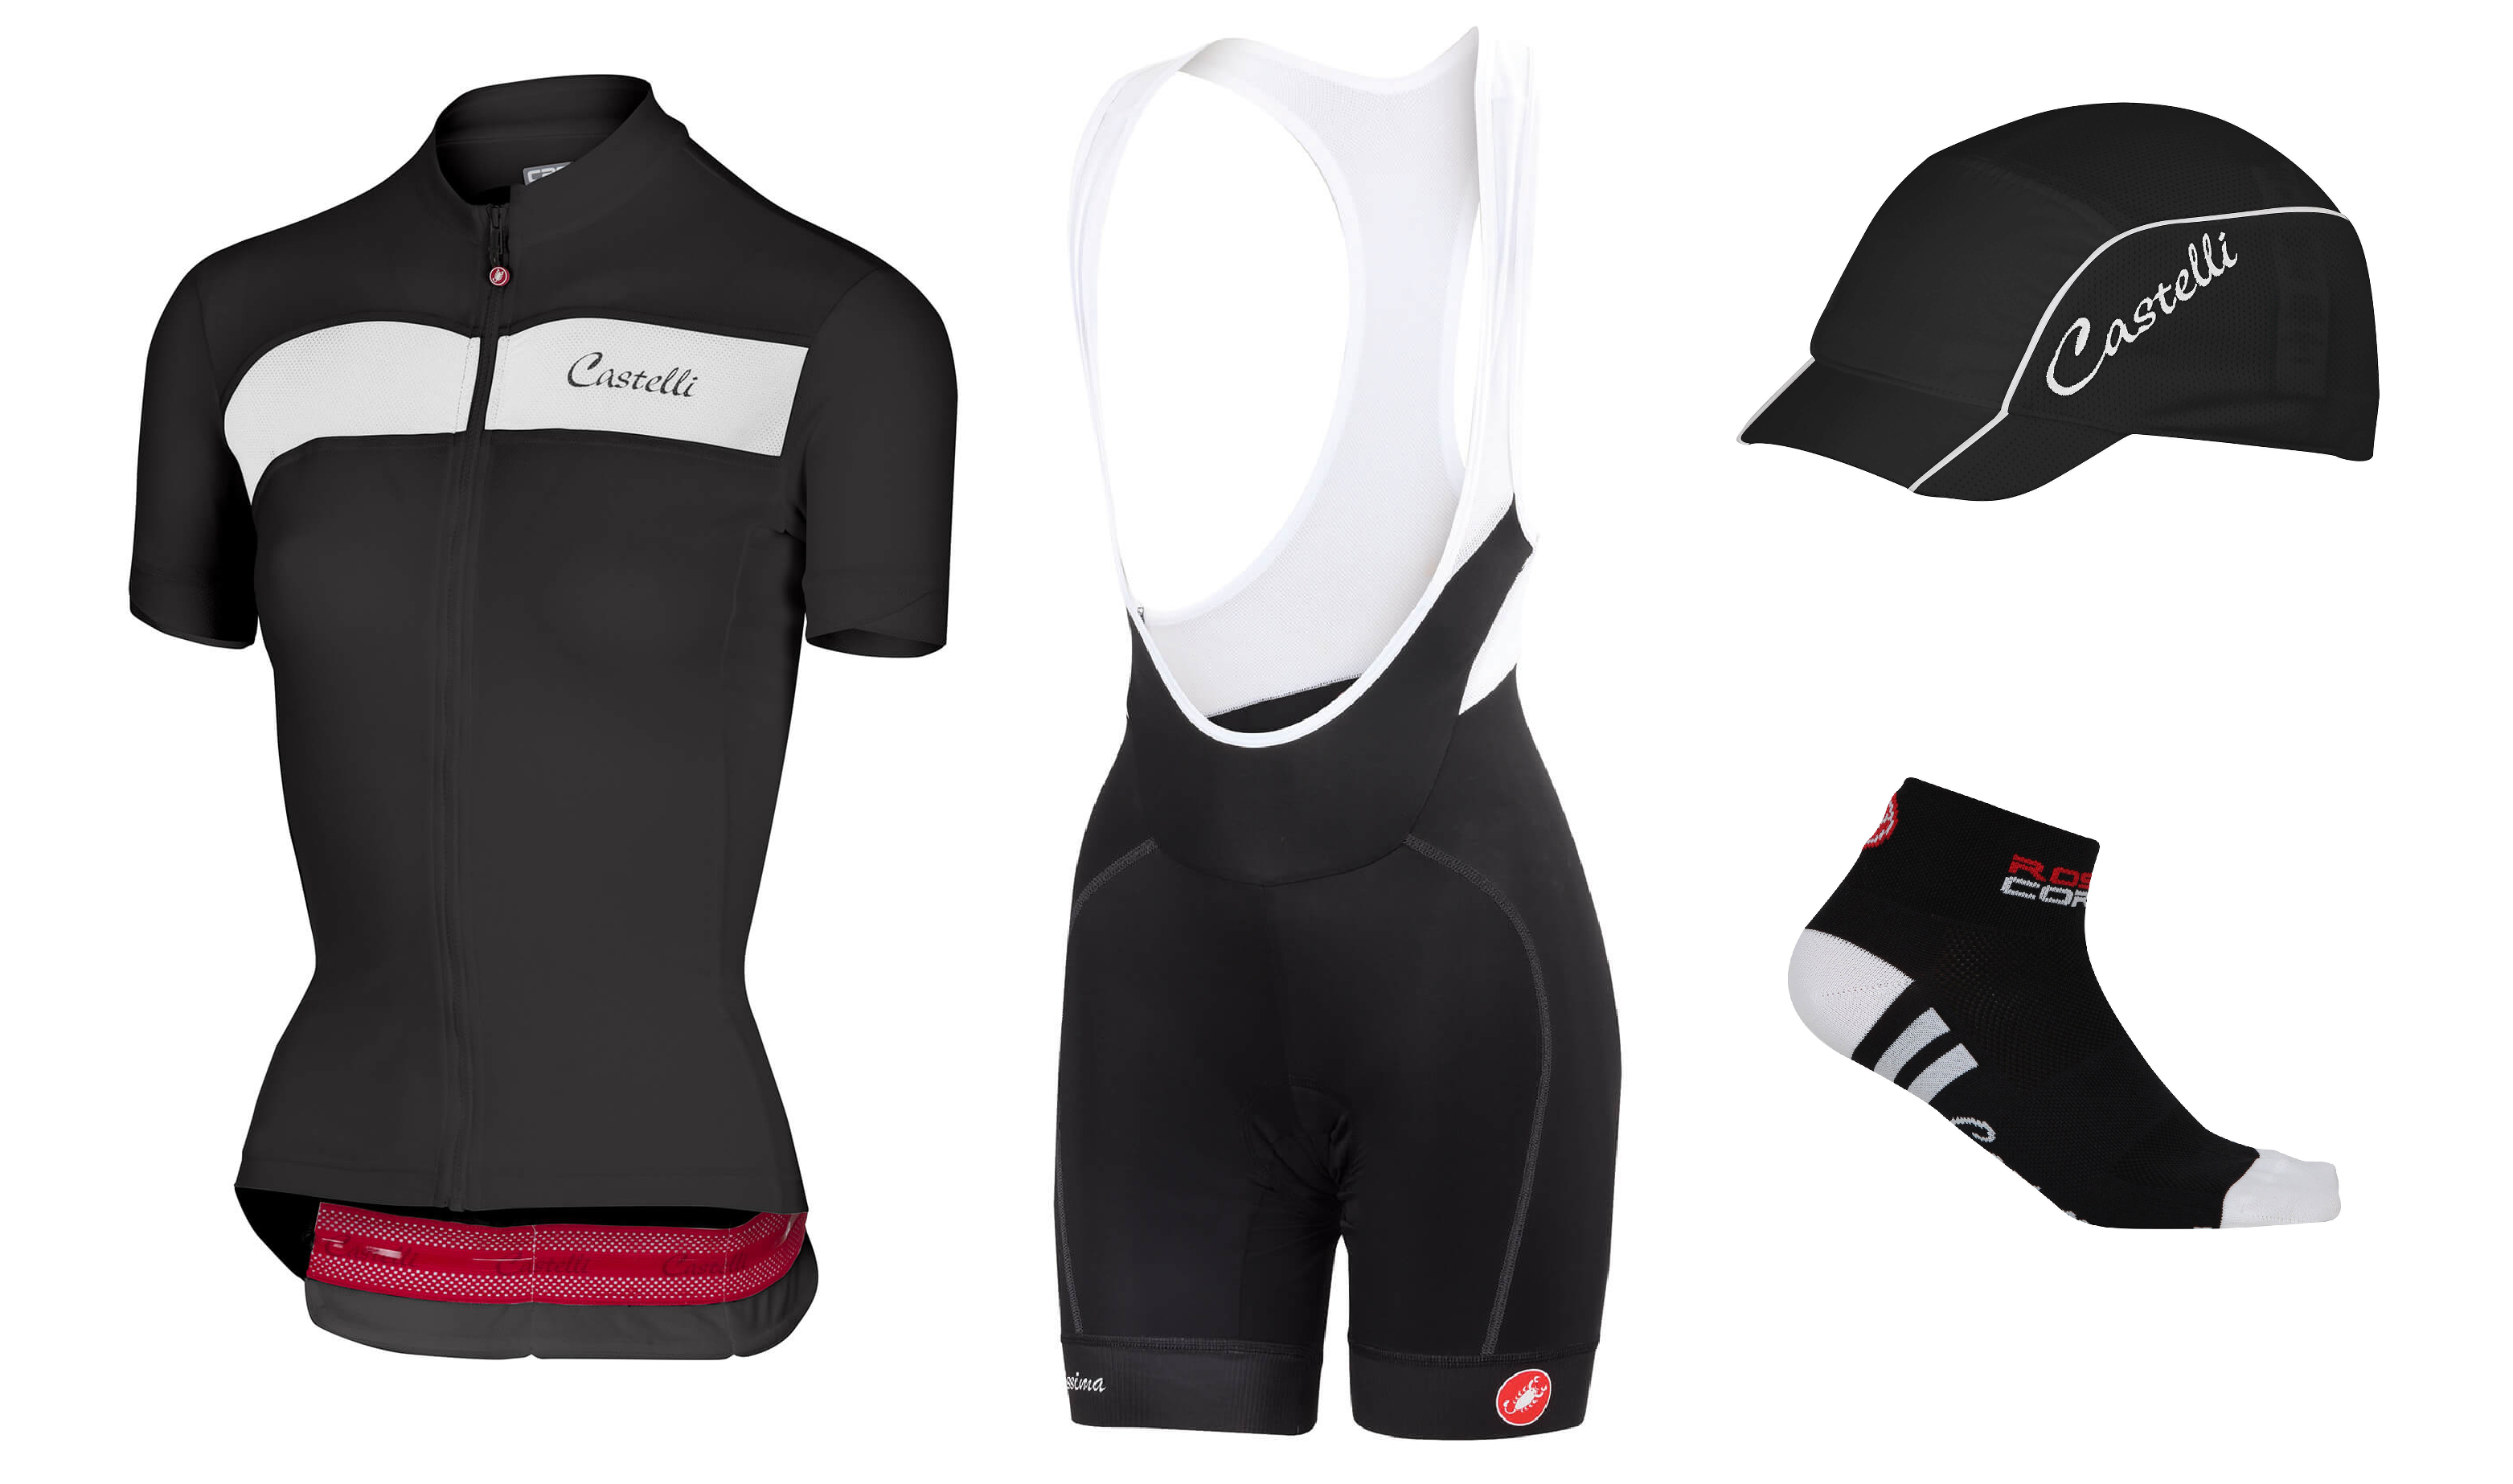 the sheggia and velocissima bib-shorts, key pieces of clothing in the castelli spring summer 2018 women's range